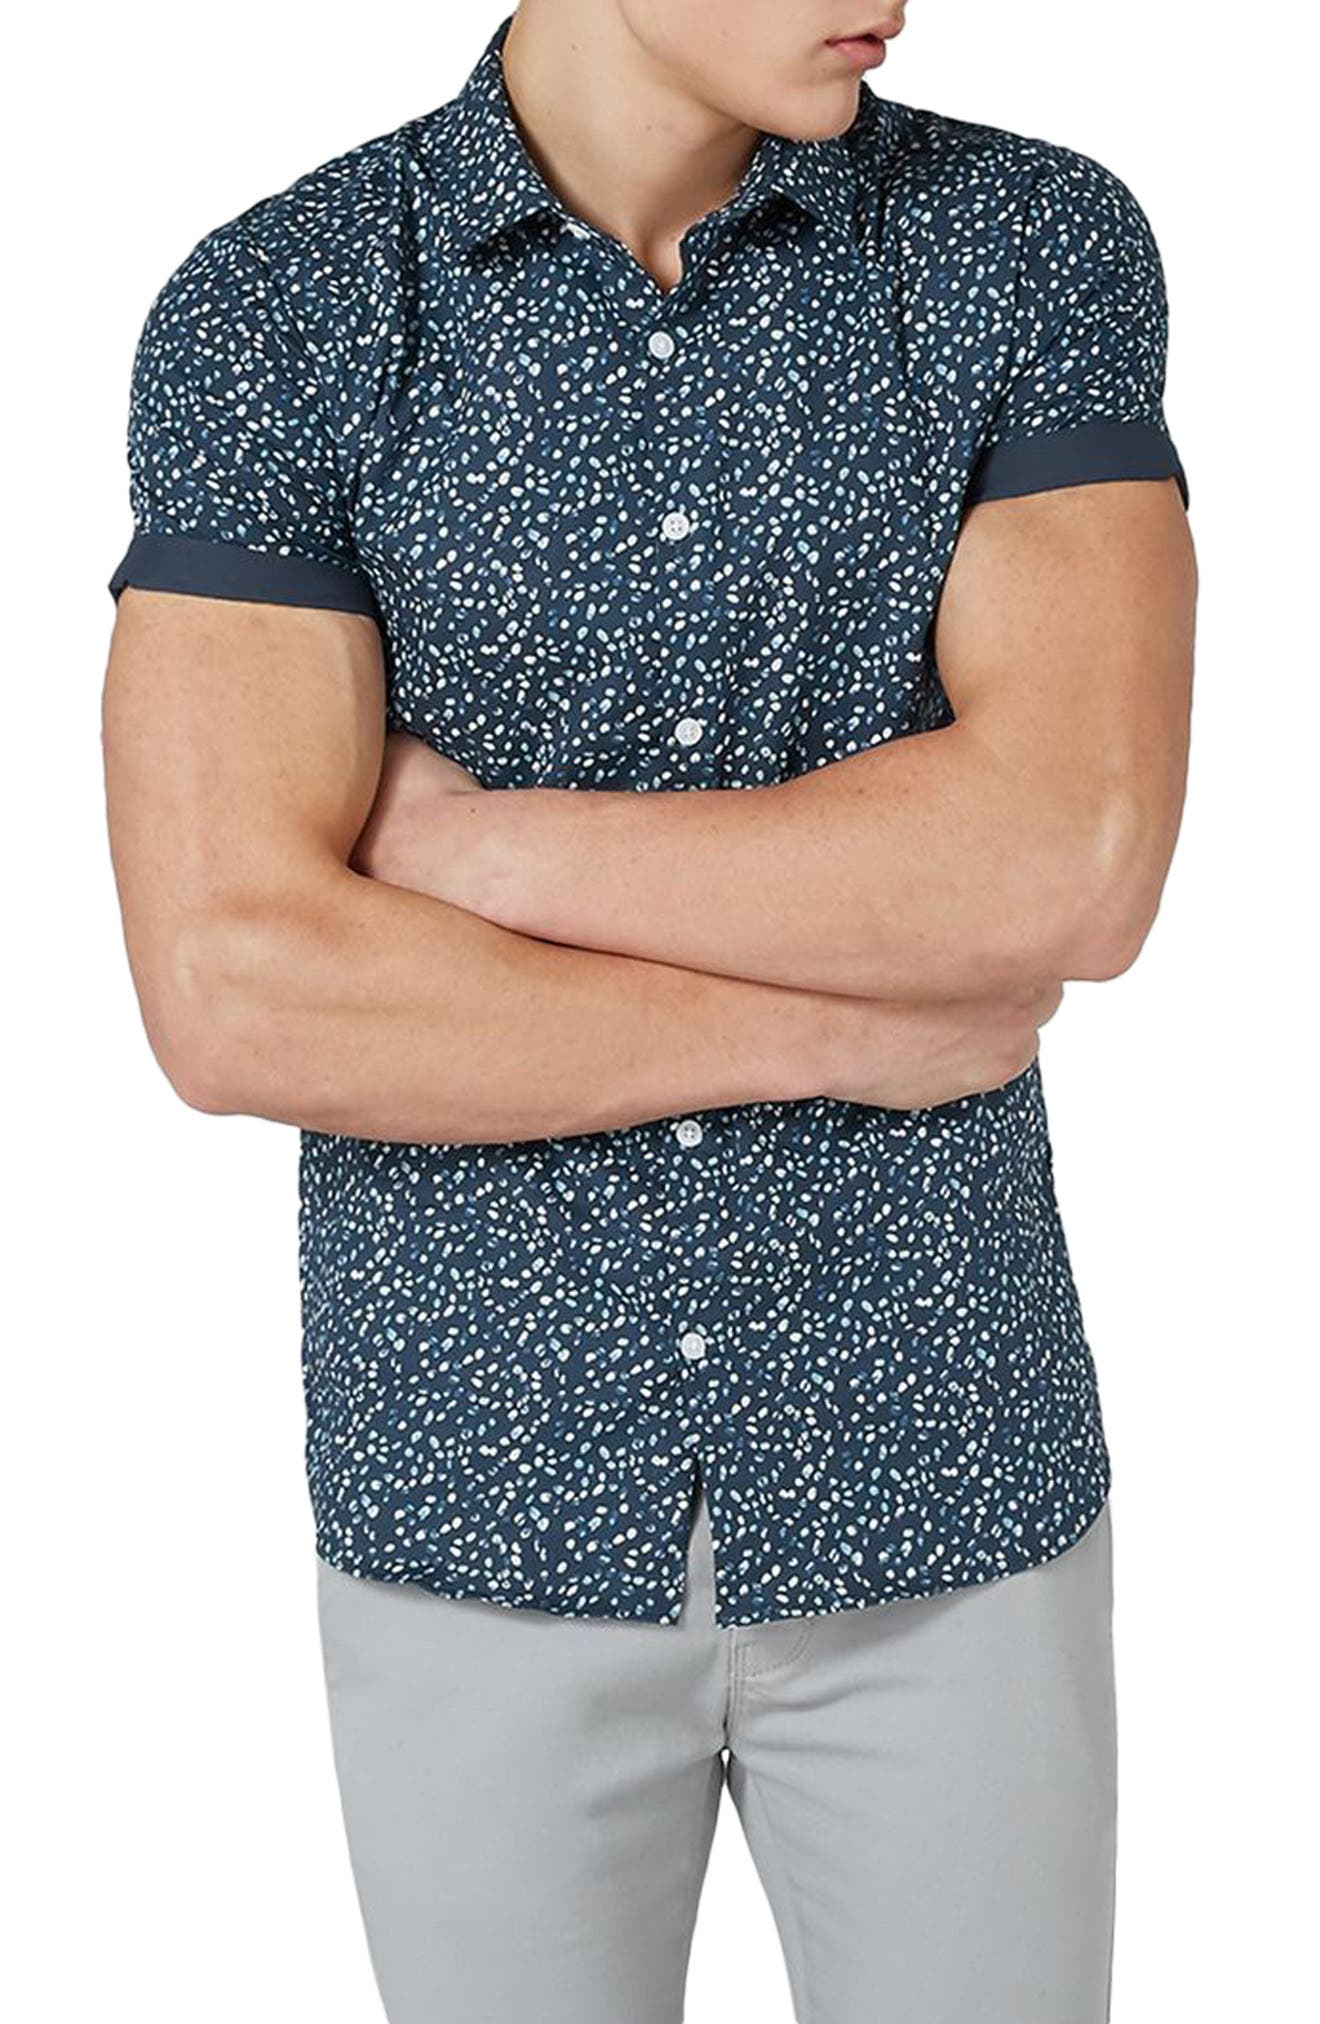 Muscle Fit Marble Print Shirt,                         Main,                         color, Blue Multi